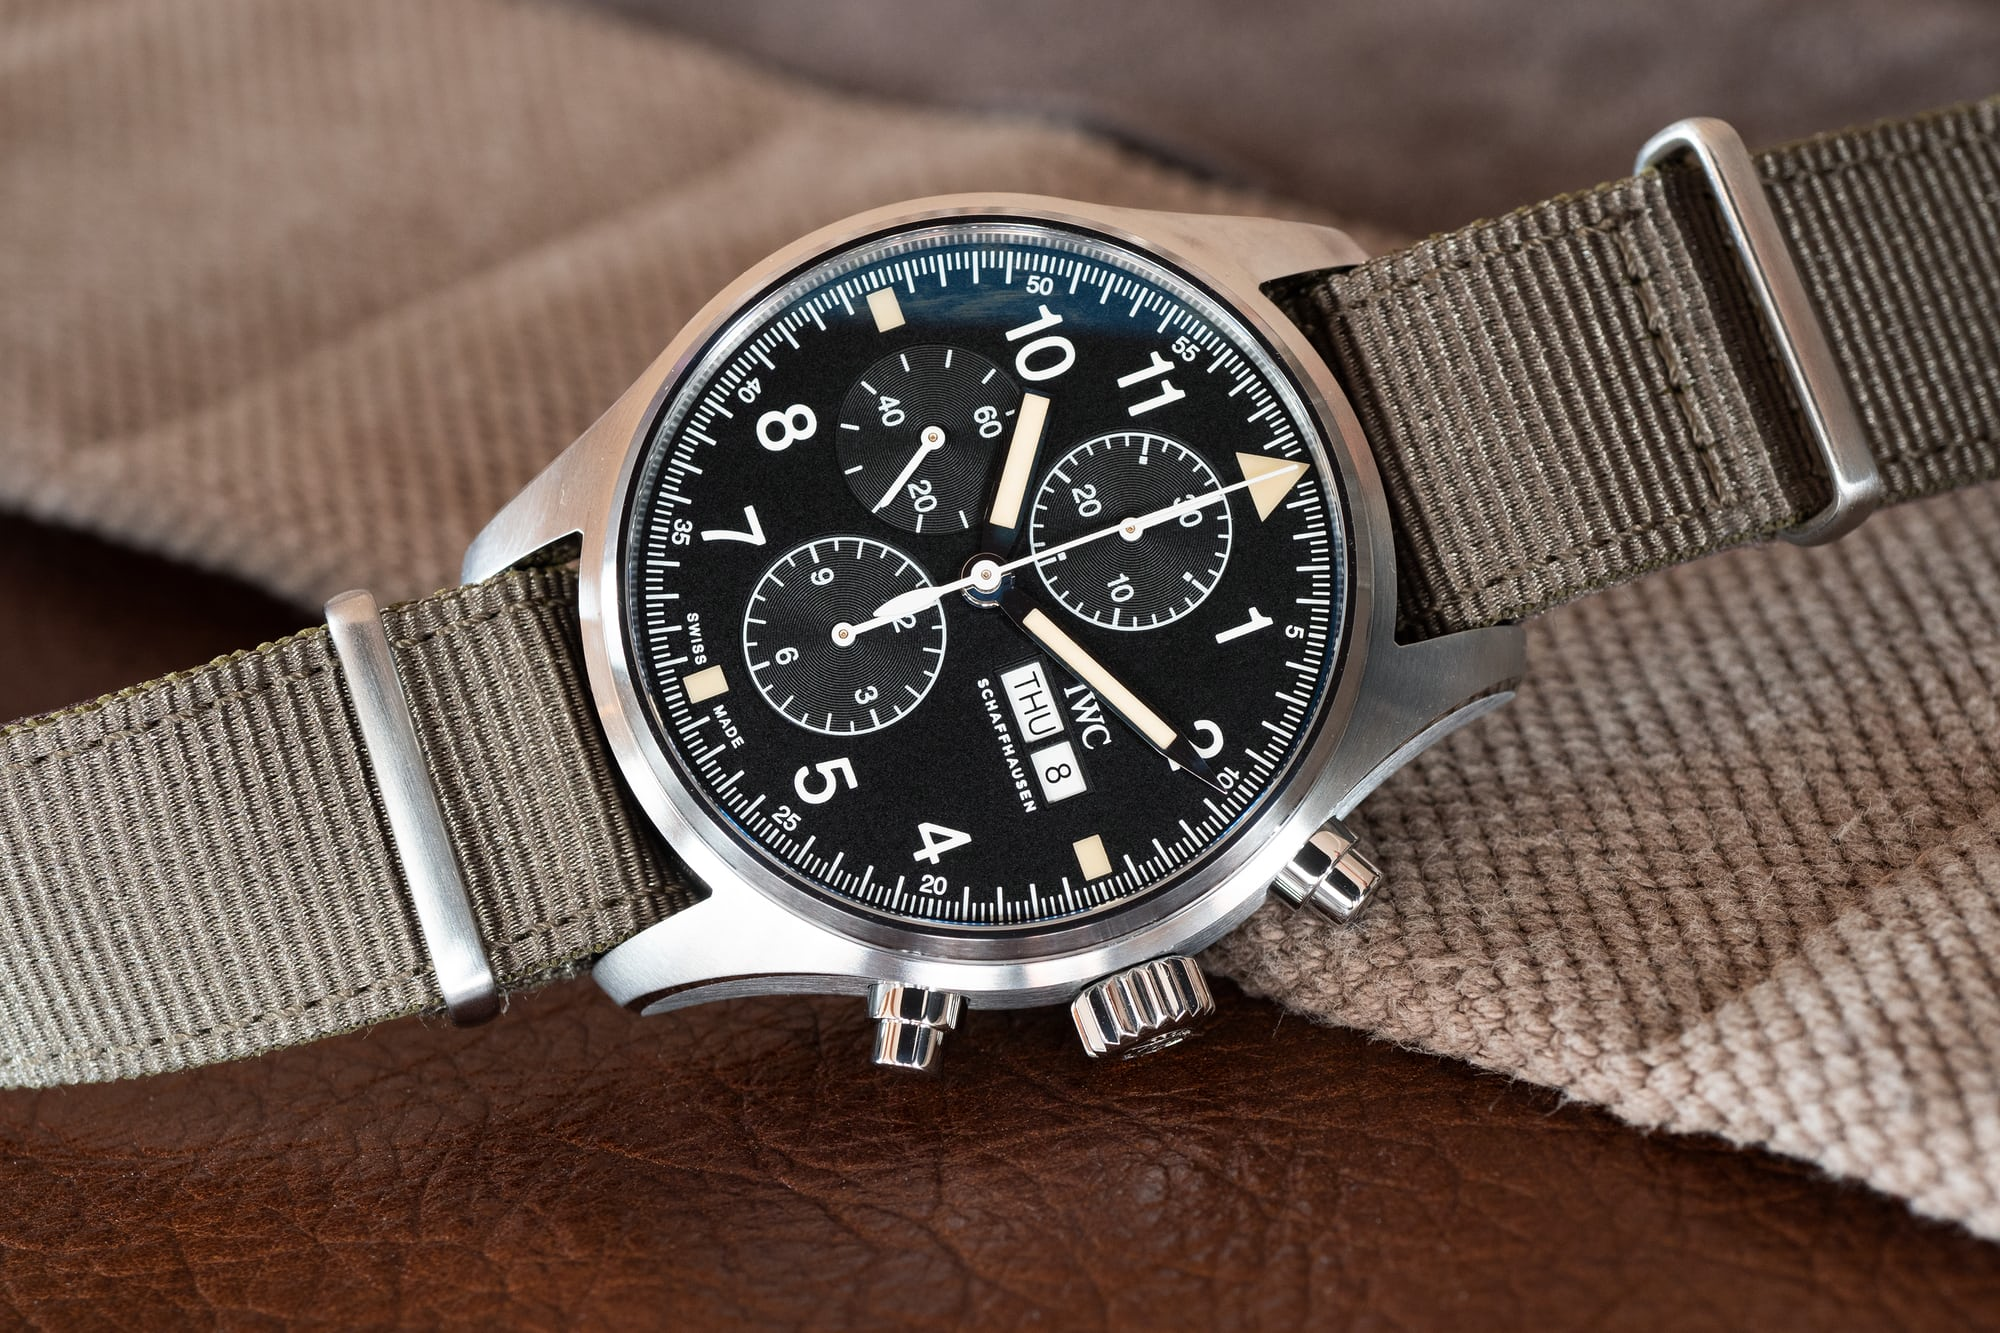 IWC Pilot's Watch Chronograph Reference IW377724 hands-on: the iwc pilot's watch chronograph ref. iw377724 Hands-On: The IWC Pilot's Watch Chronograph Ref. IW377724 P4250224